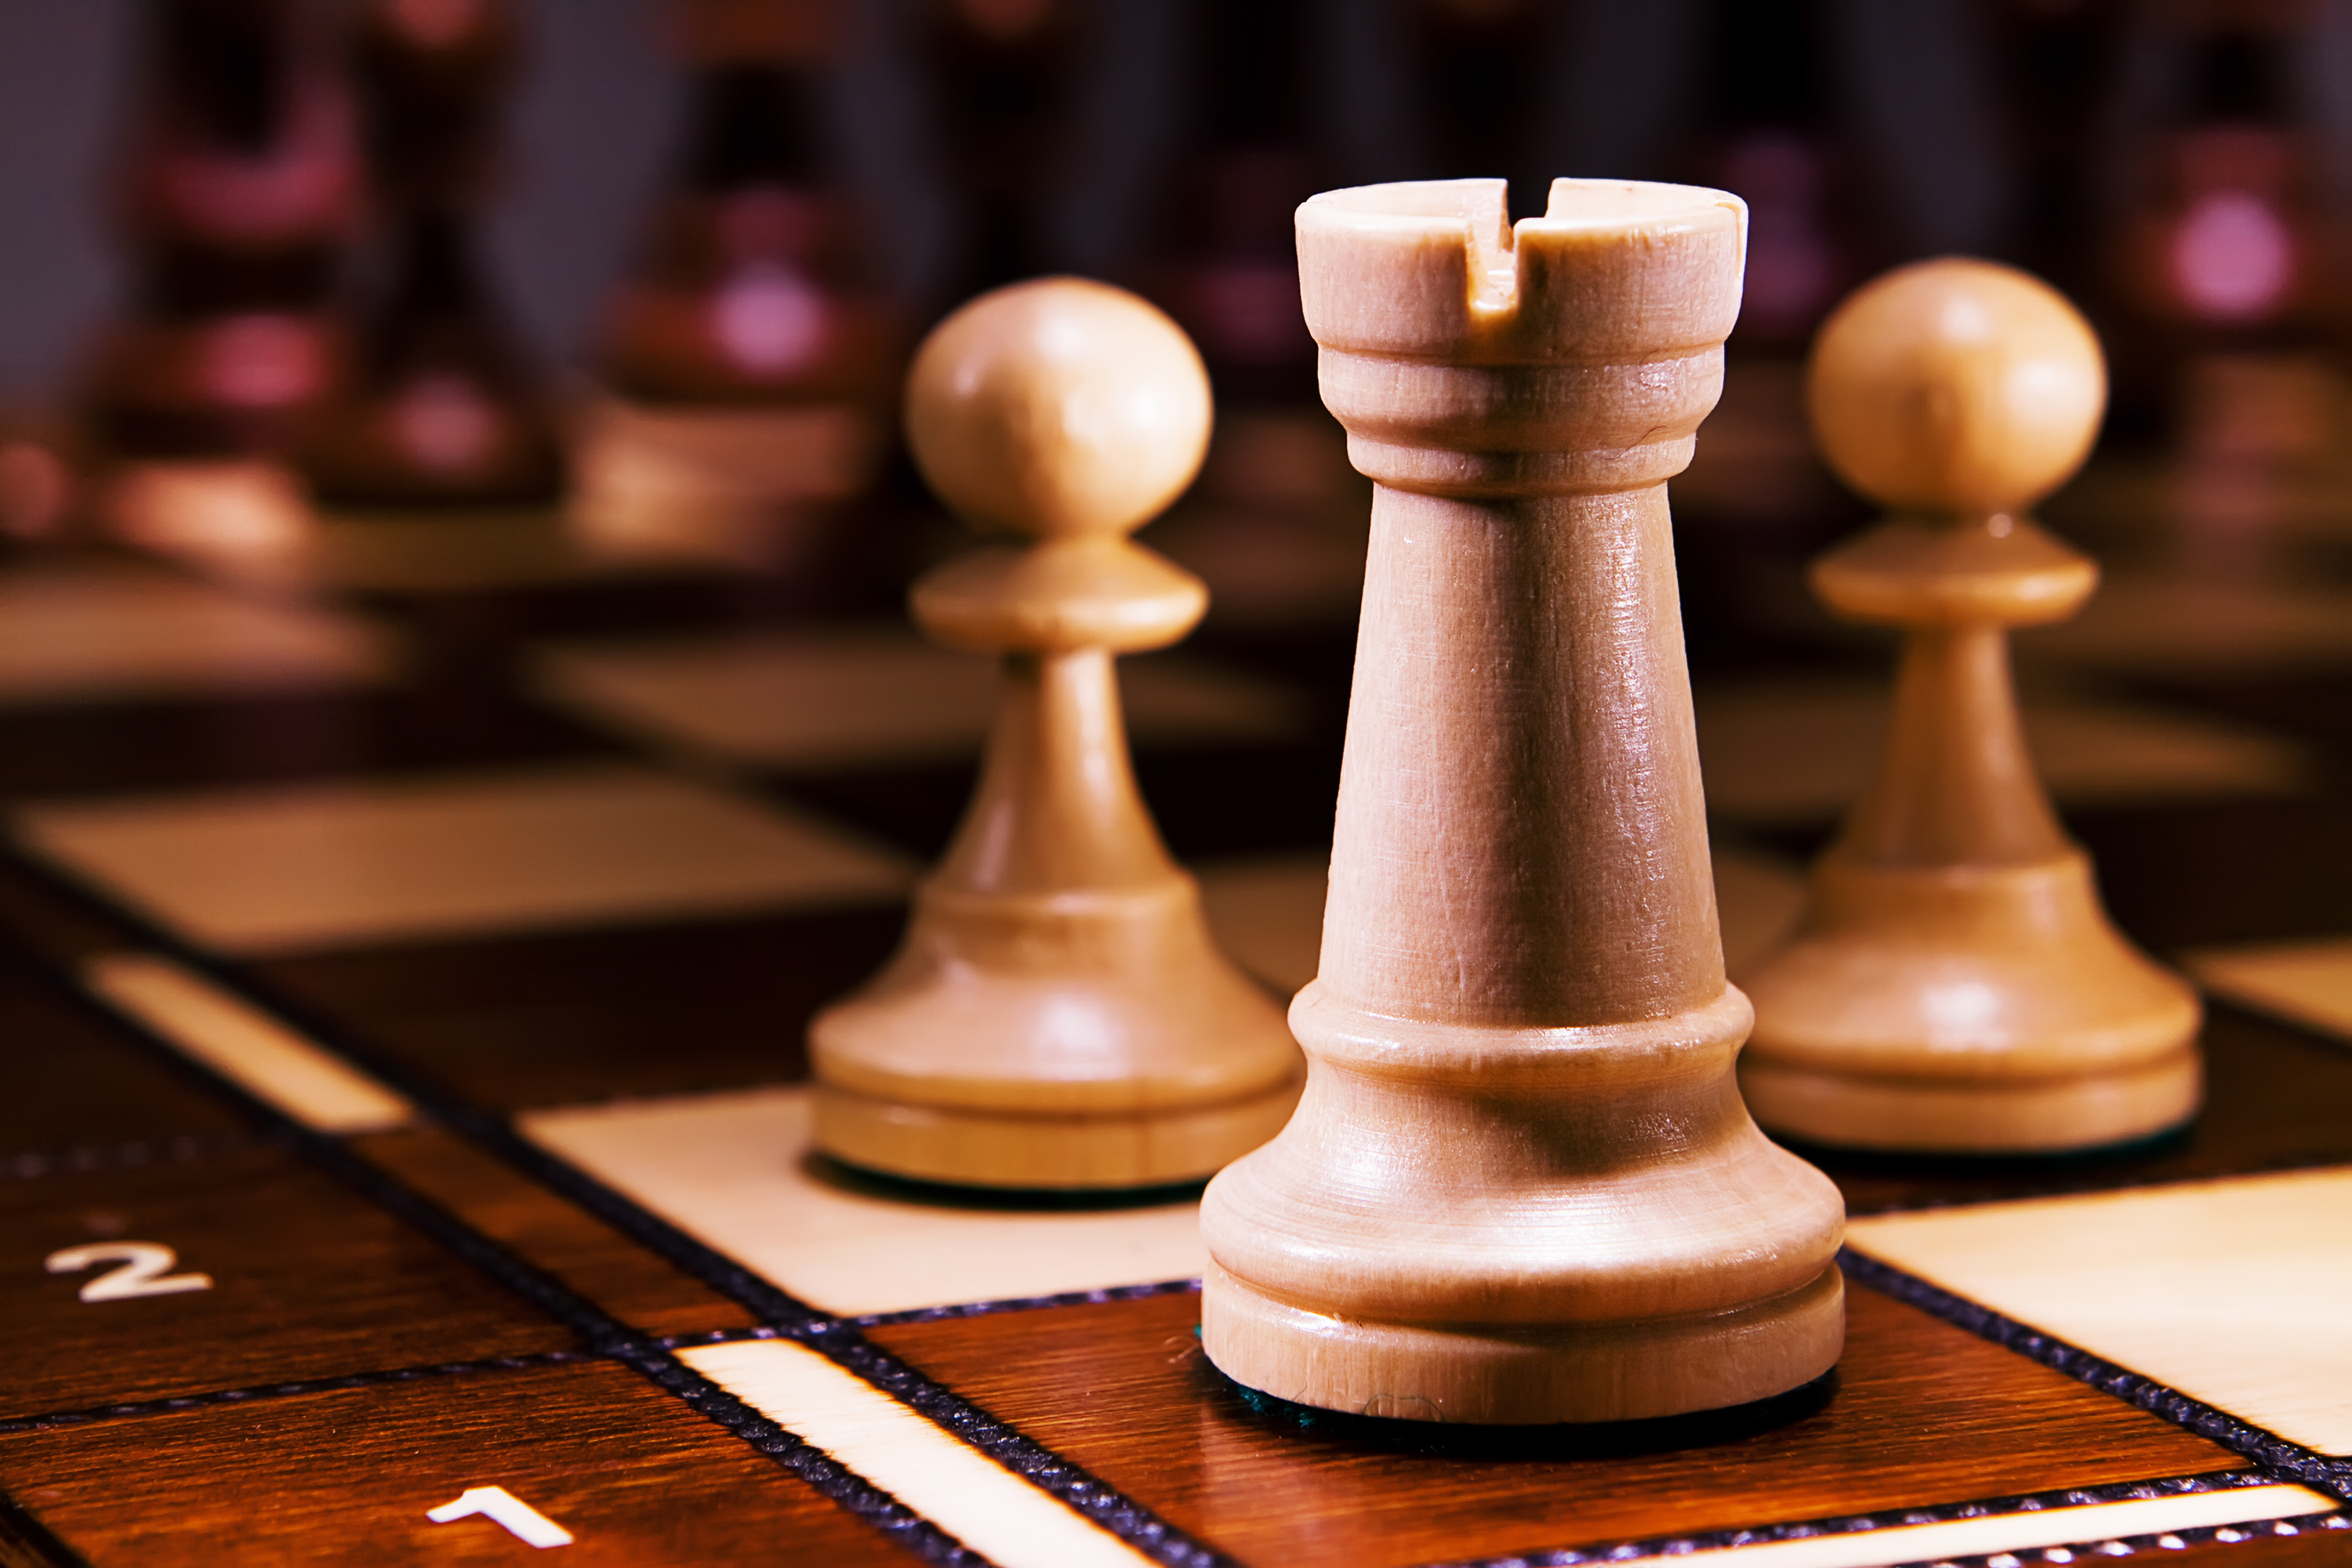 chess, Challenge, One, Tactical, Strategy, HQ Photo